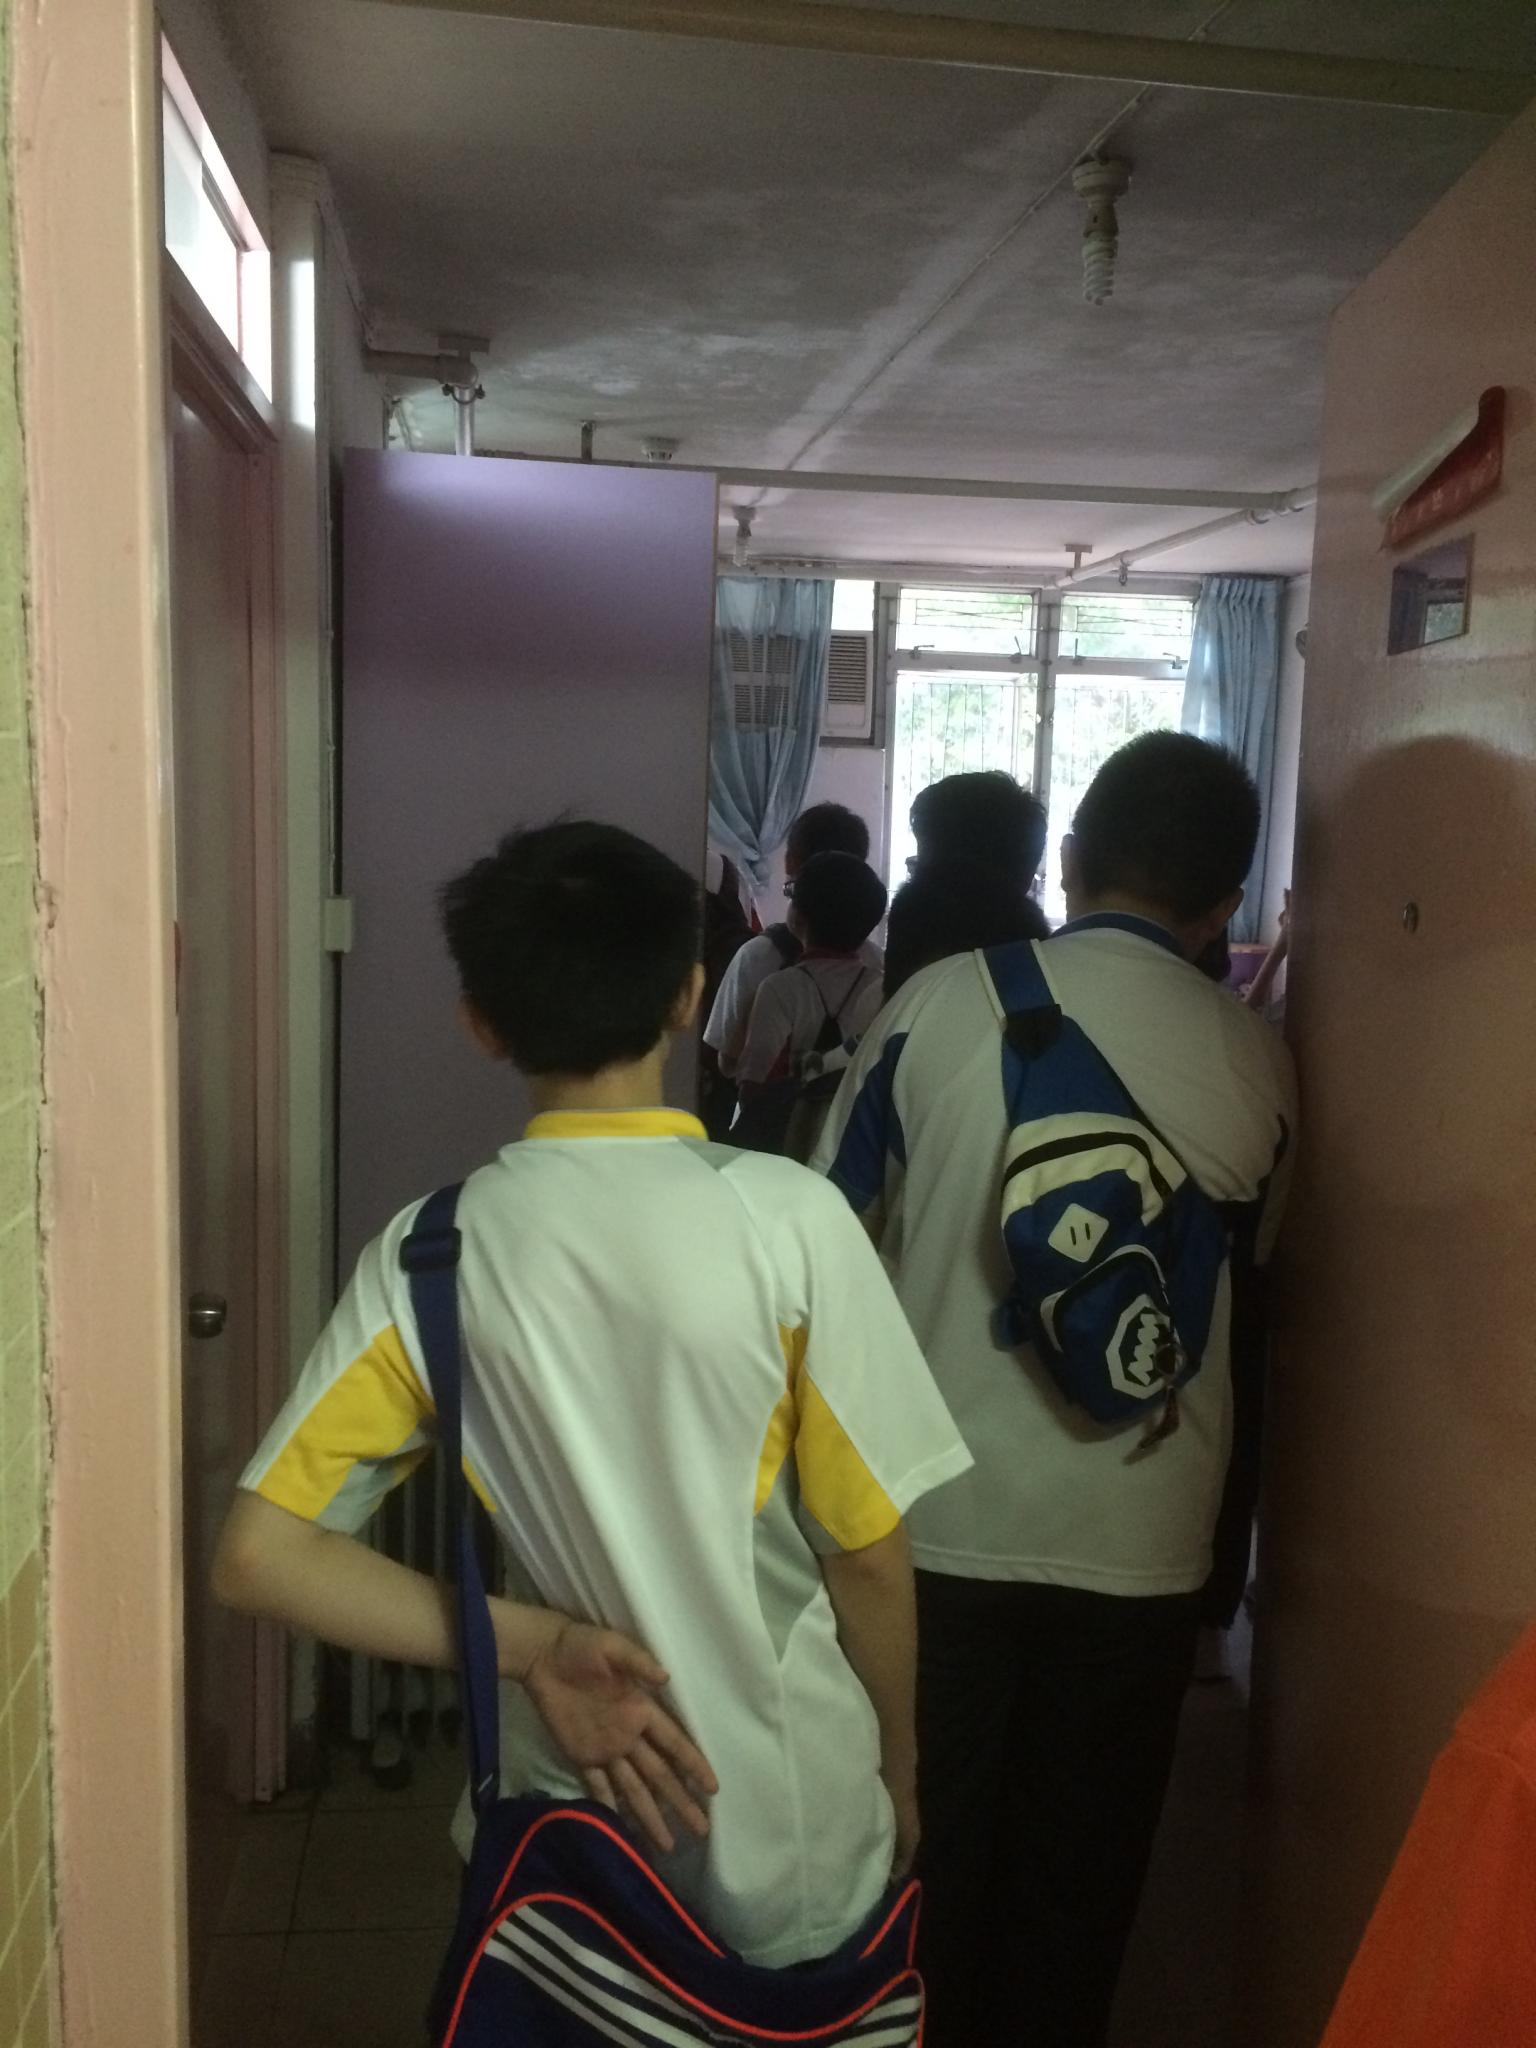 Students are visiting the residents' bed rooms.